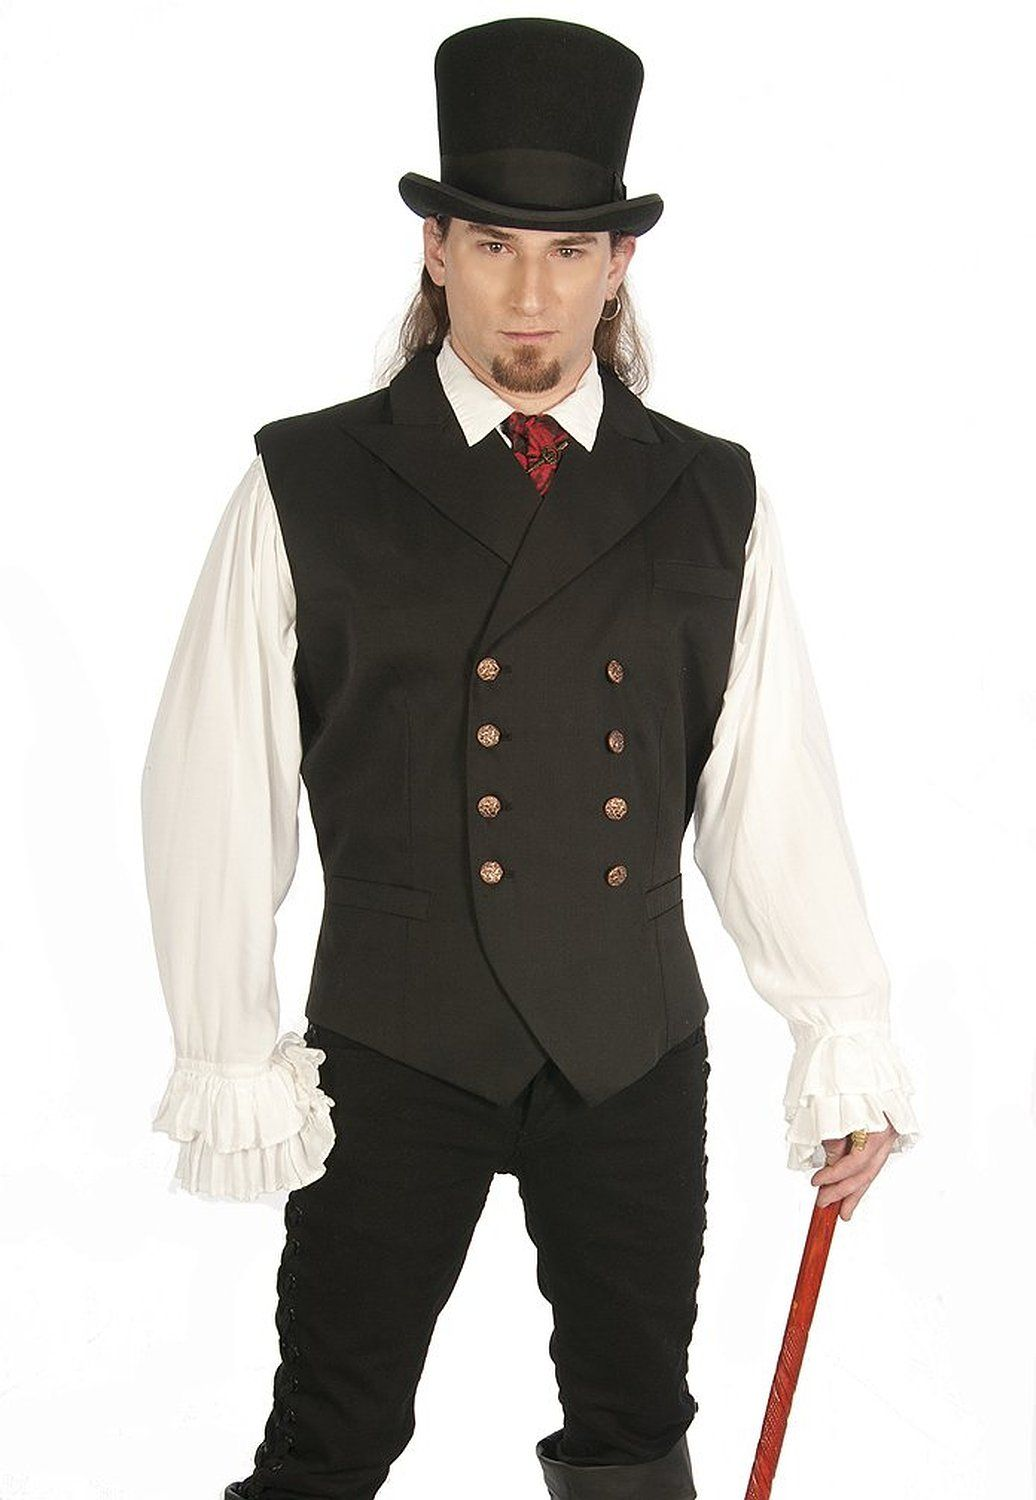 Double Breasted Vest For Men http://steampunkclothingace.com/double-breasted-vest-men/